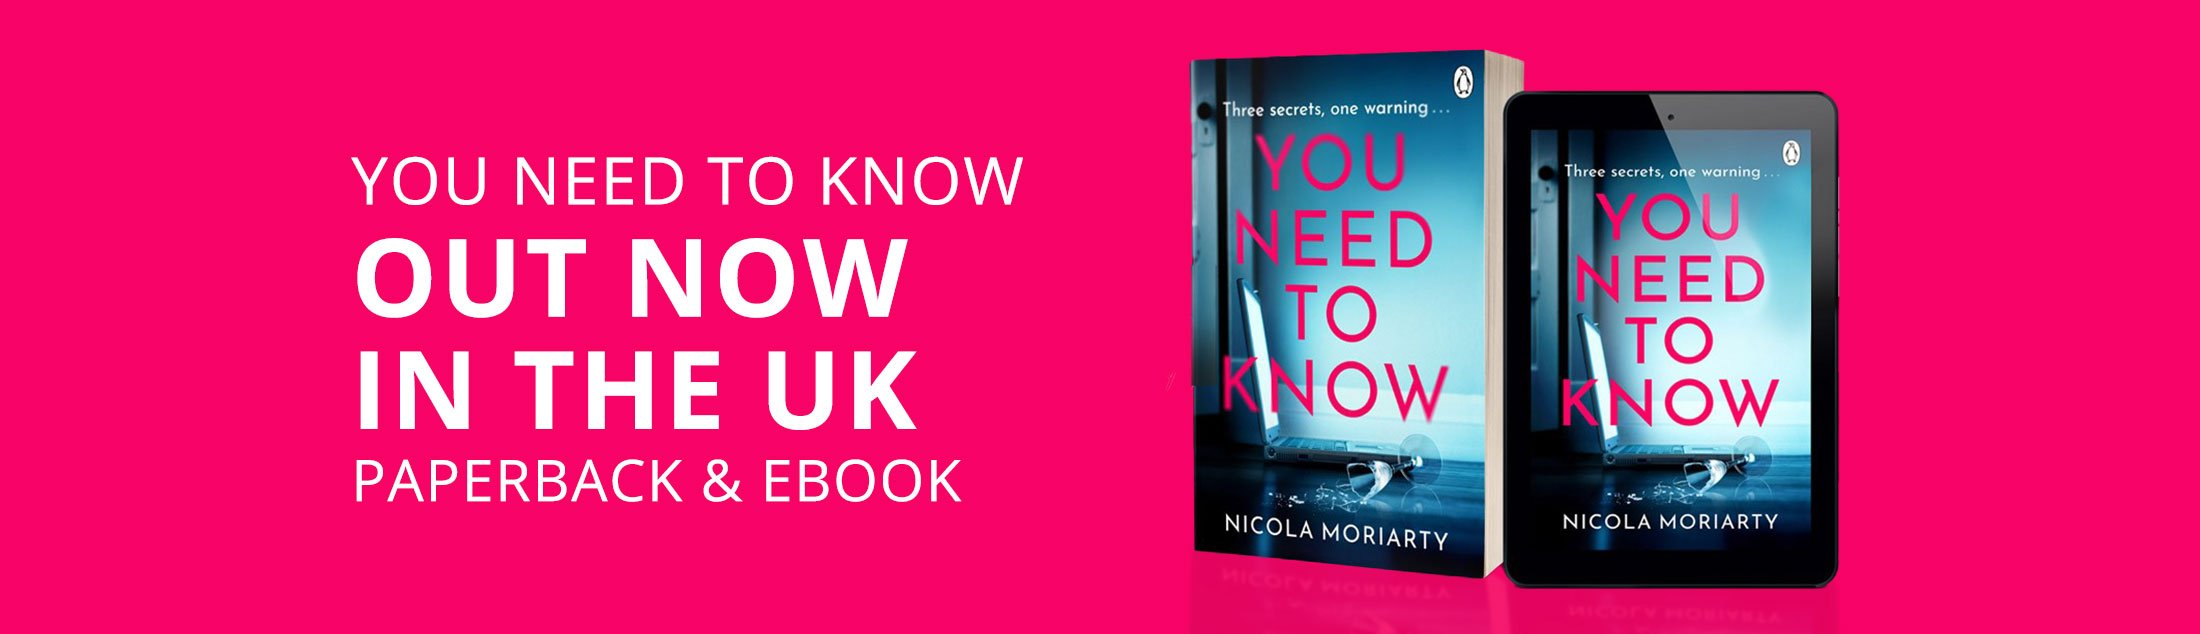 You Need to Know - Out Now in UK